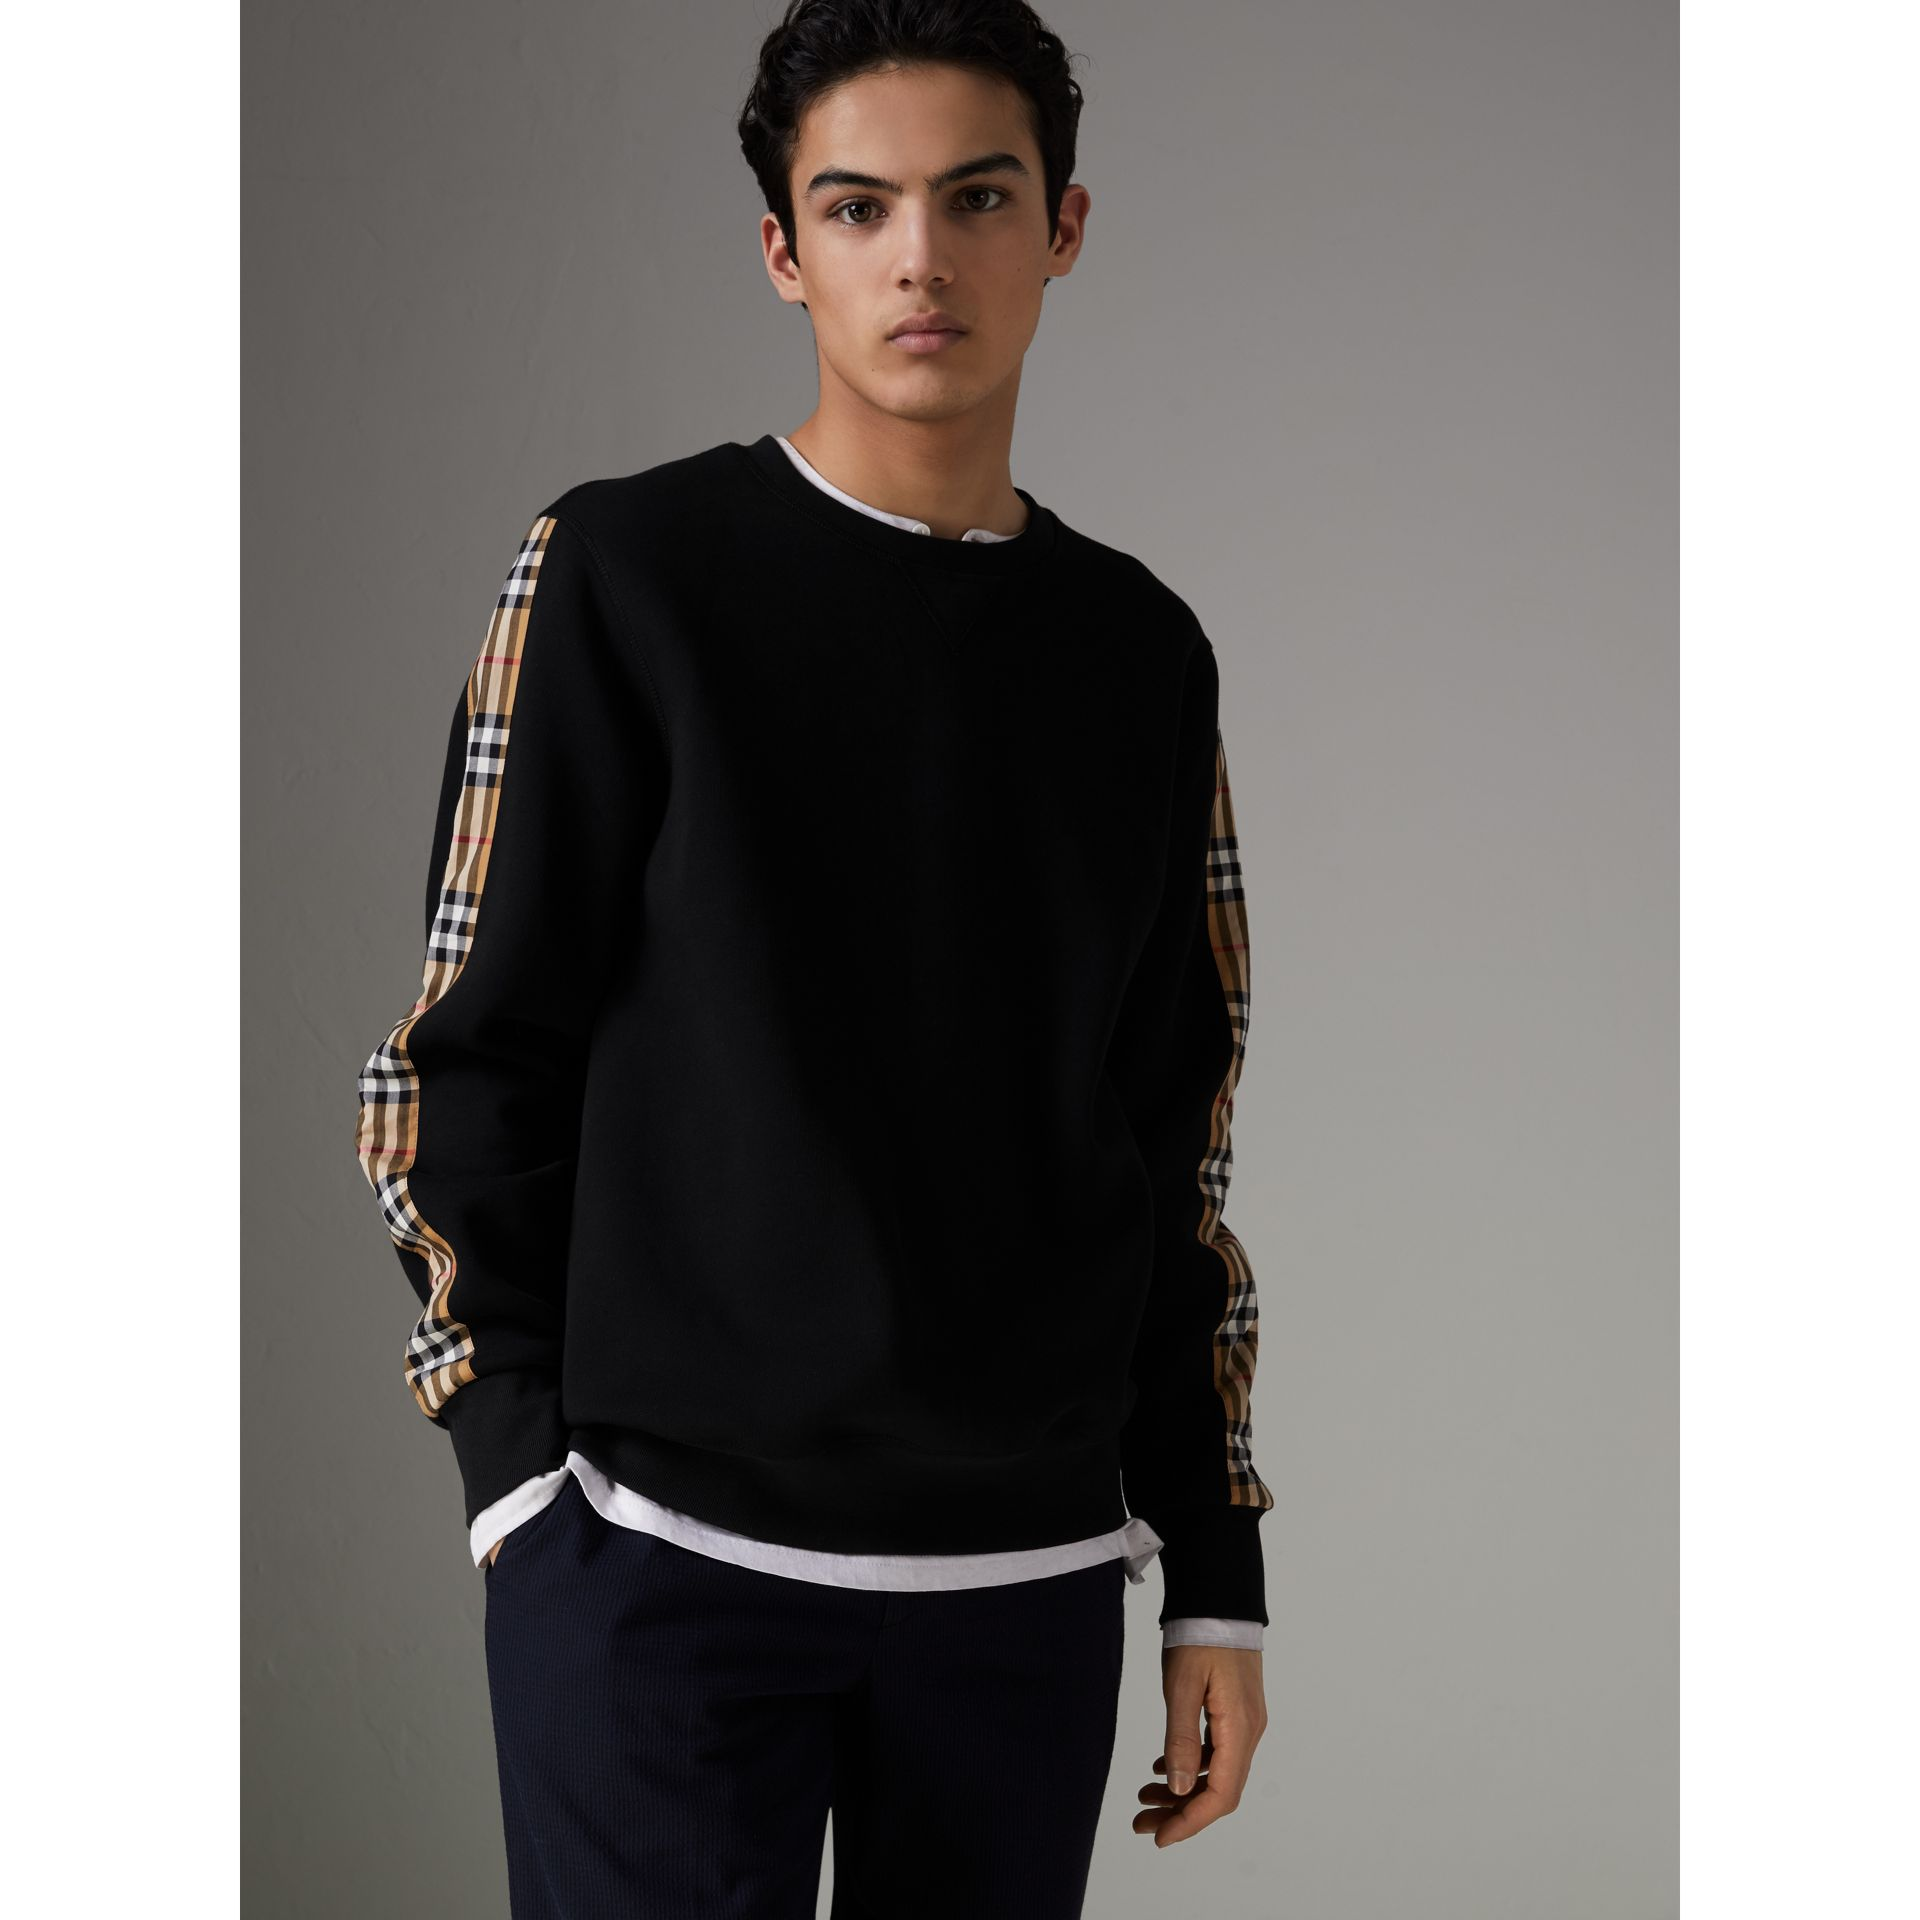 Vintage Check Detail Cotton Blend Sweatshirt in Black - Men | Burberry Singapore - gallery image 5